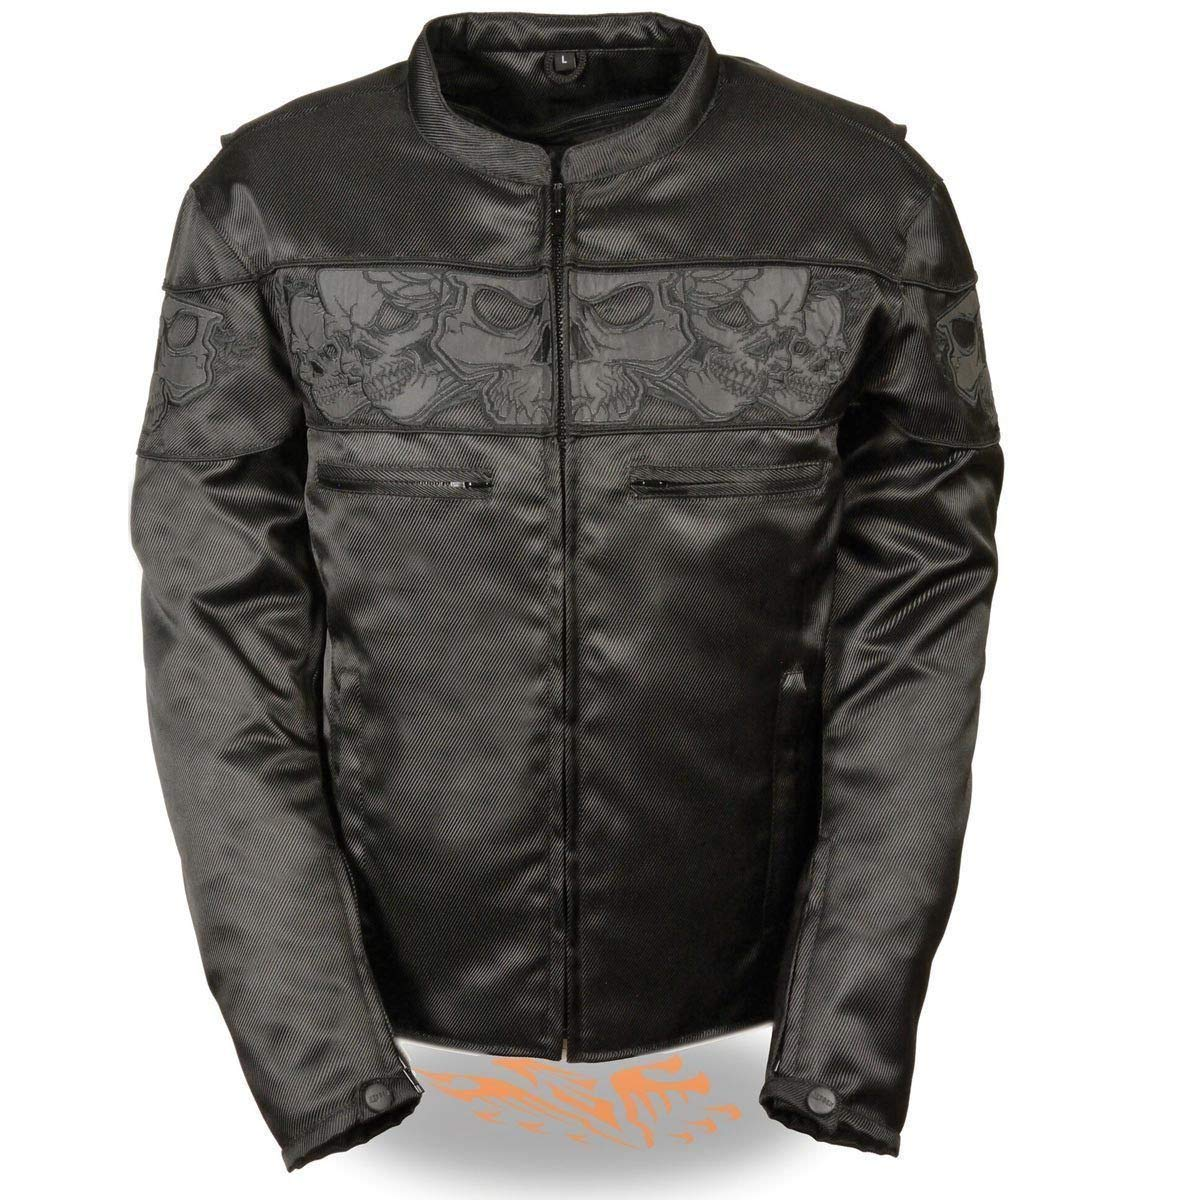 Milwaukee Leather Mens Reflective Skulls Black Textile Jacket with Gun Pockets - Small